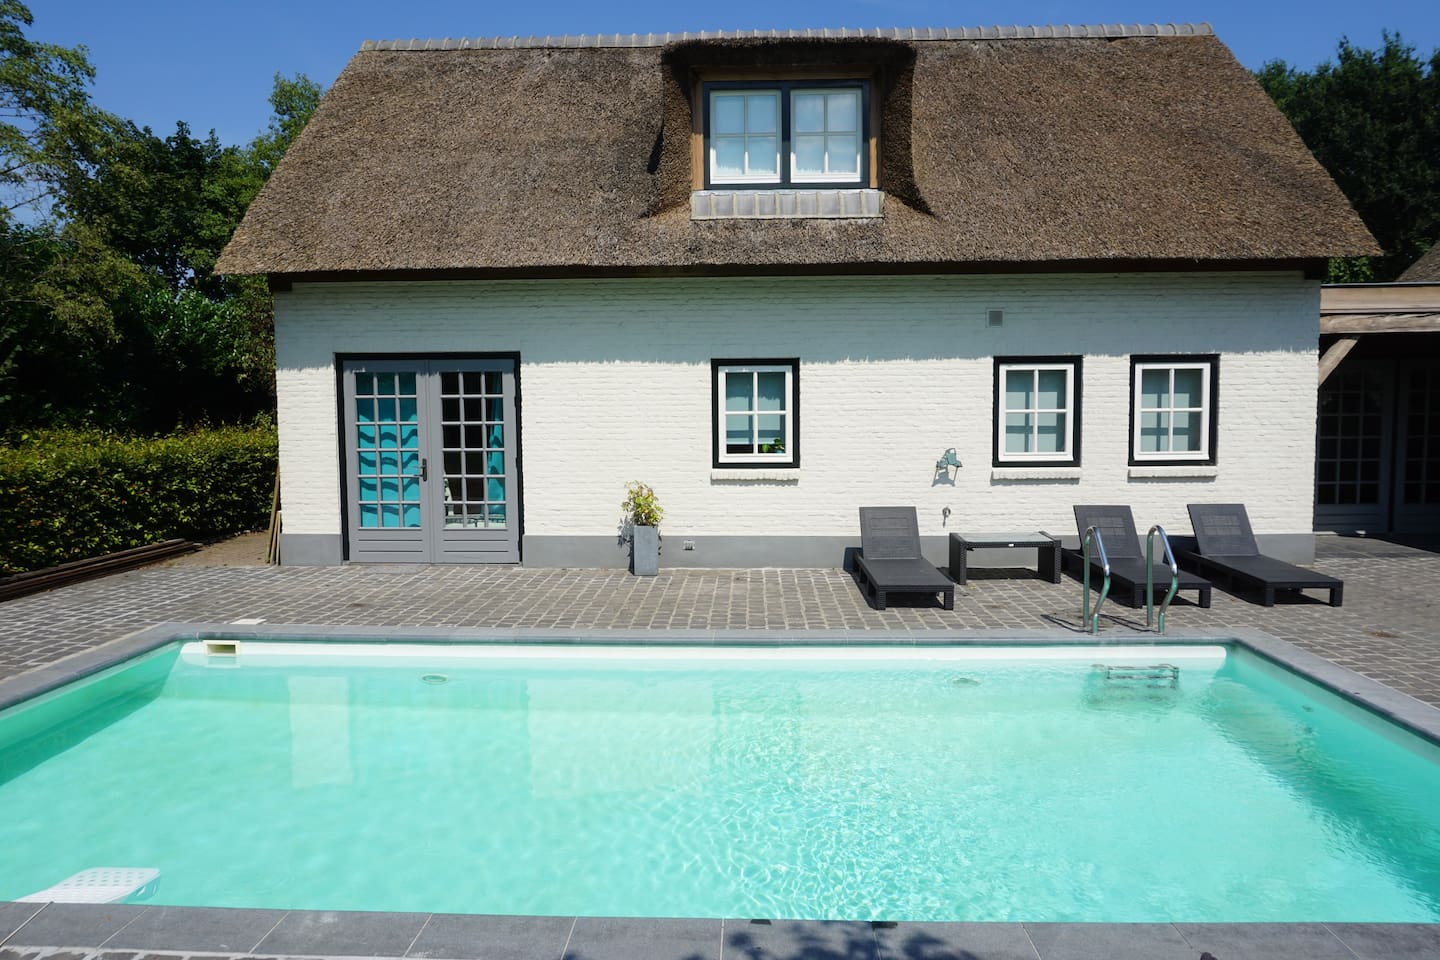 Guesthouse and pool